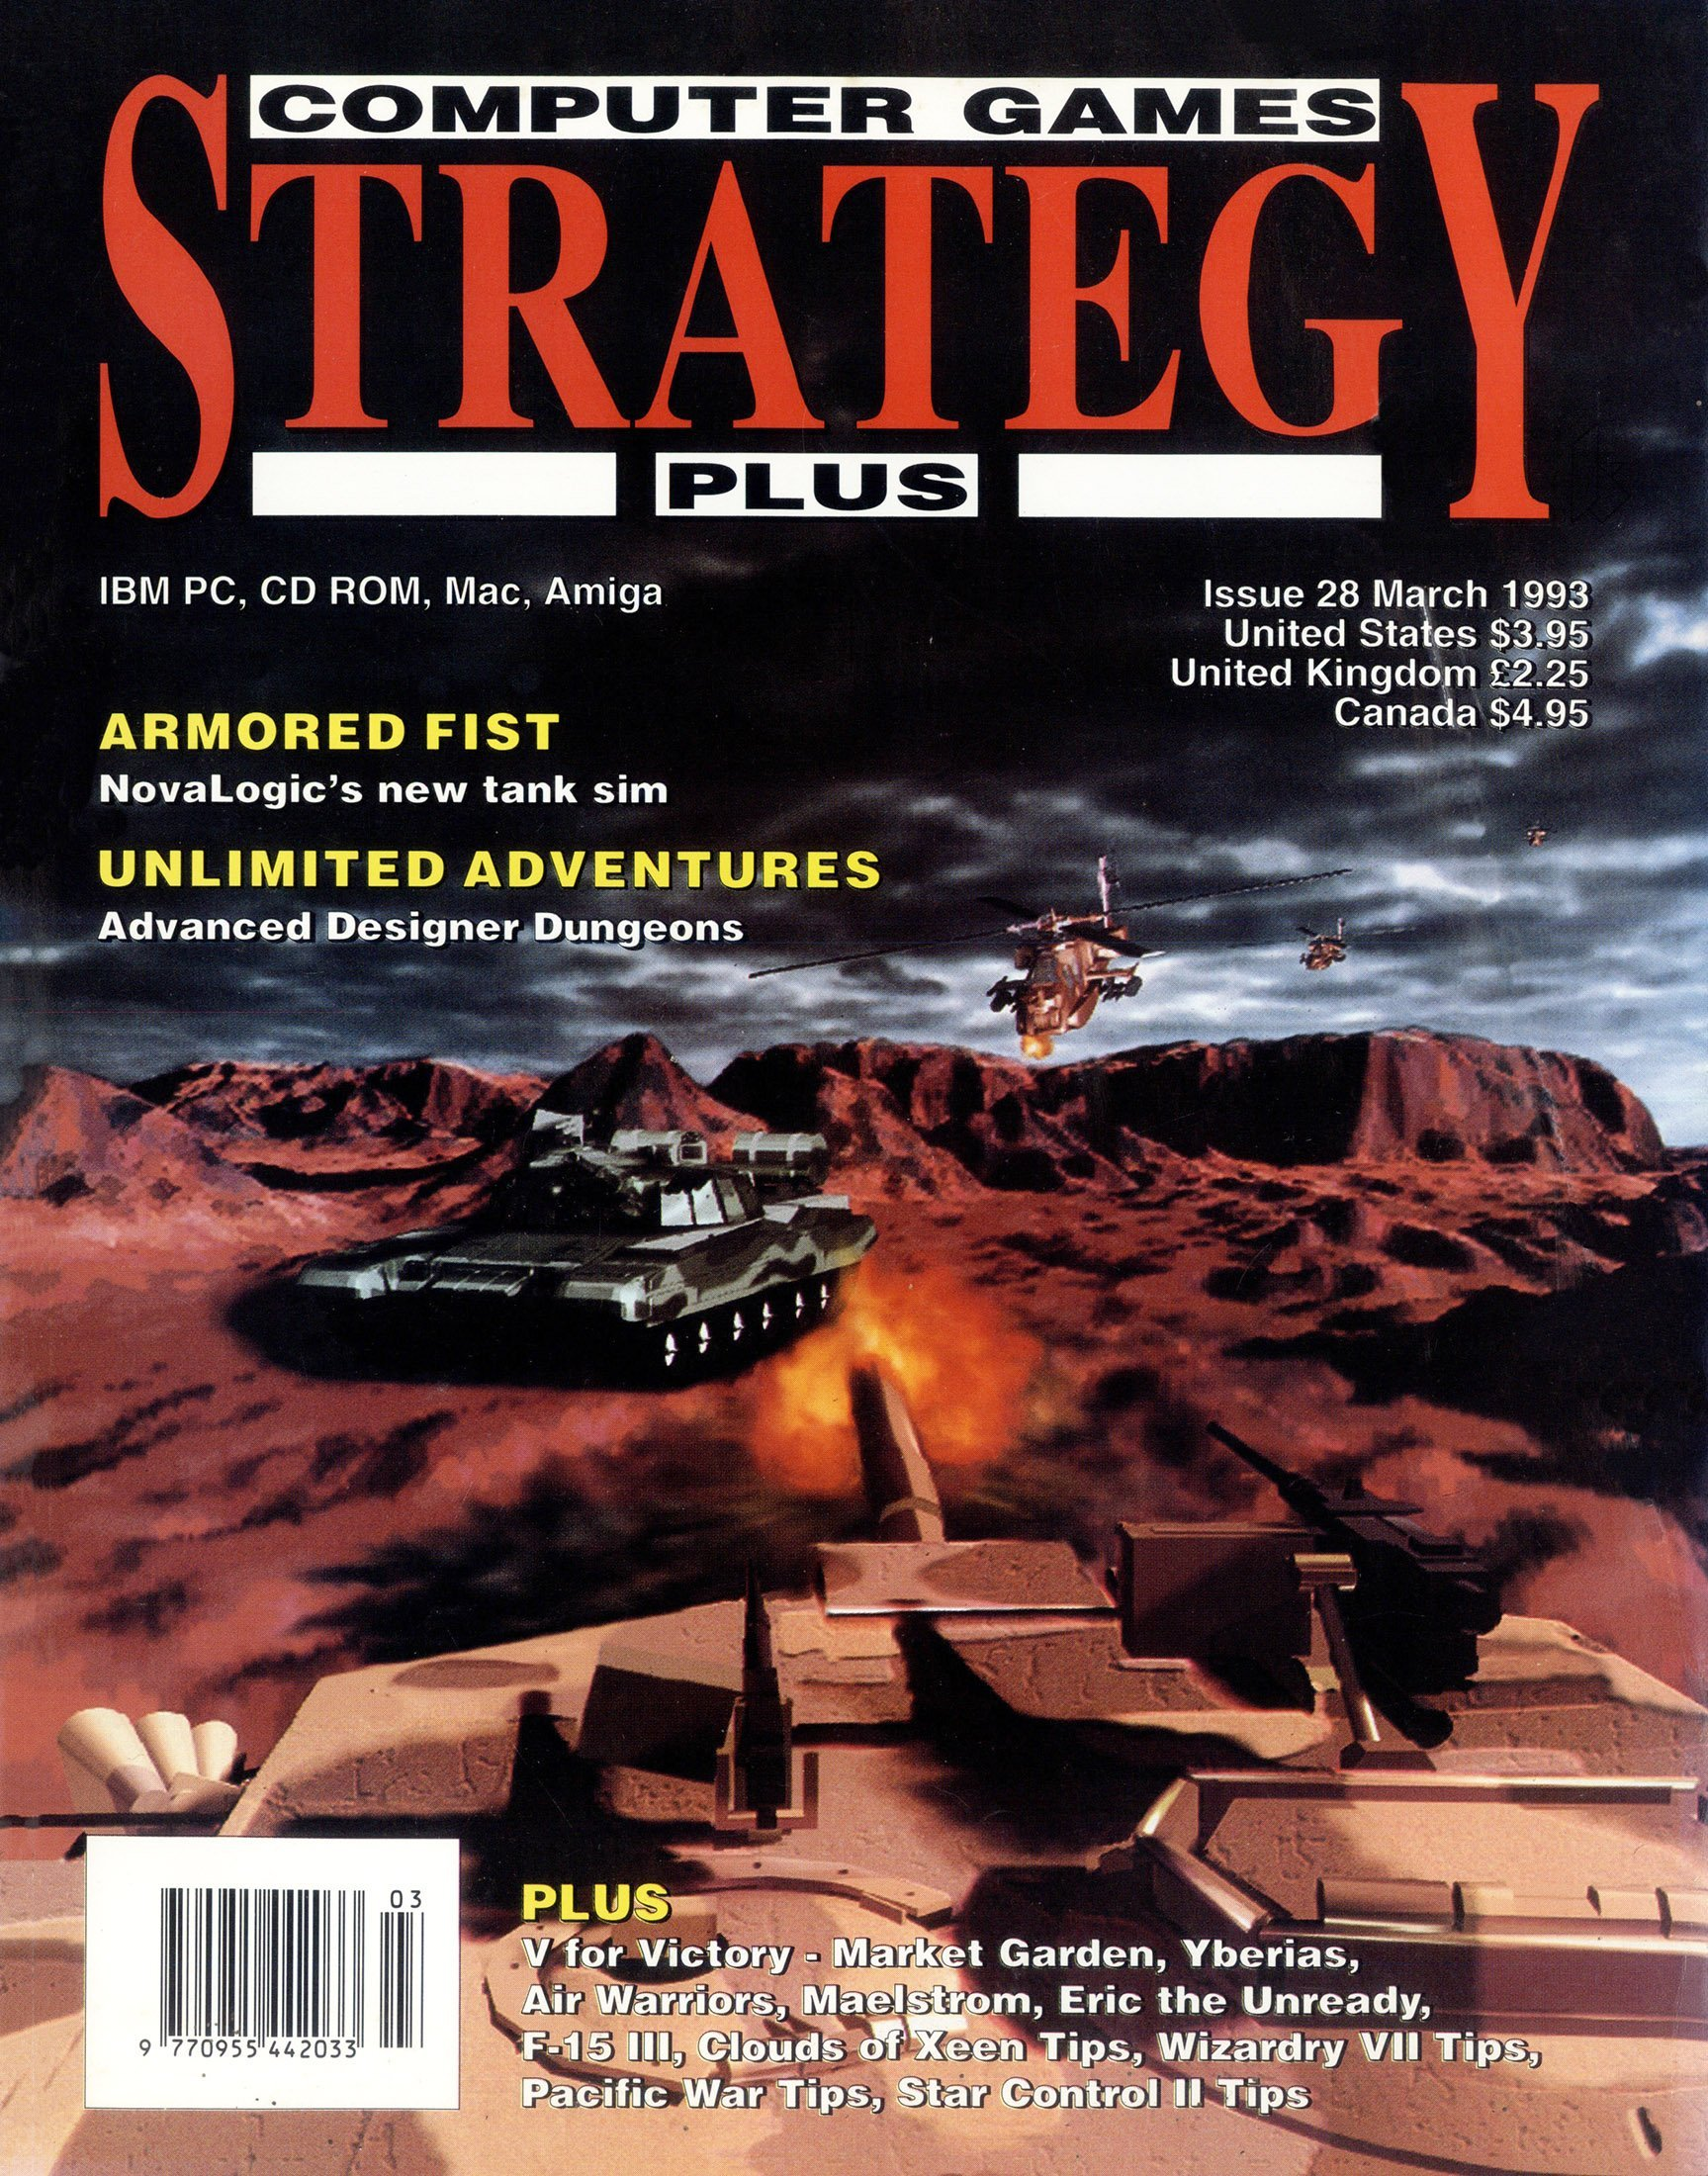 Computer Games Strategy Plus Issue 028 (March 1993)